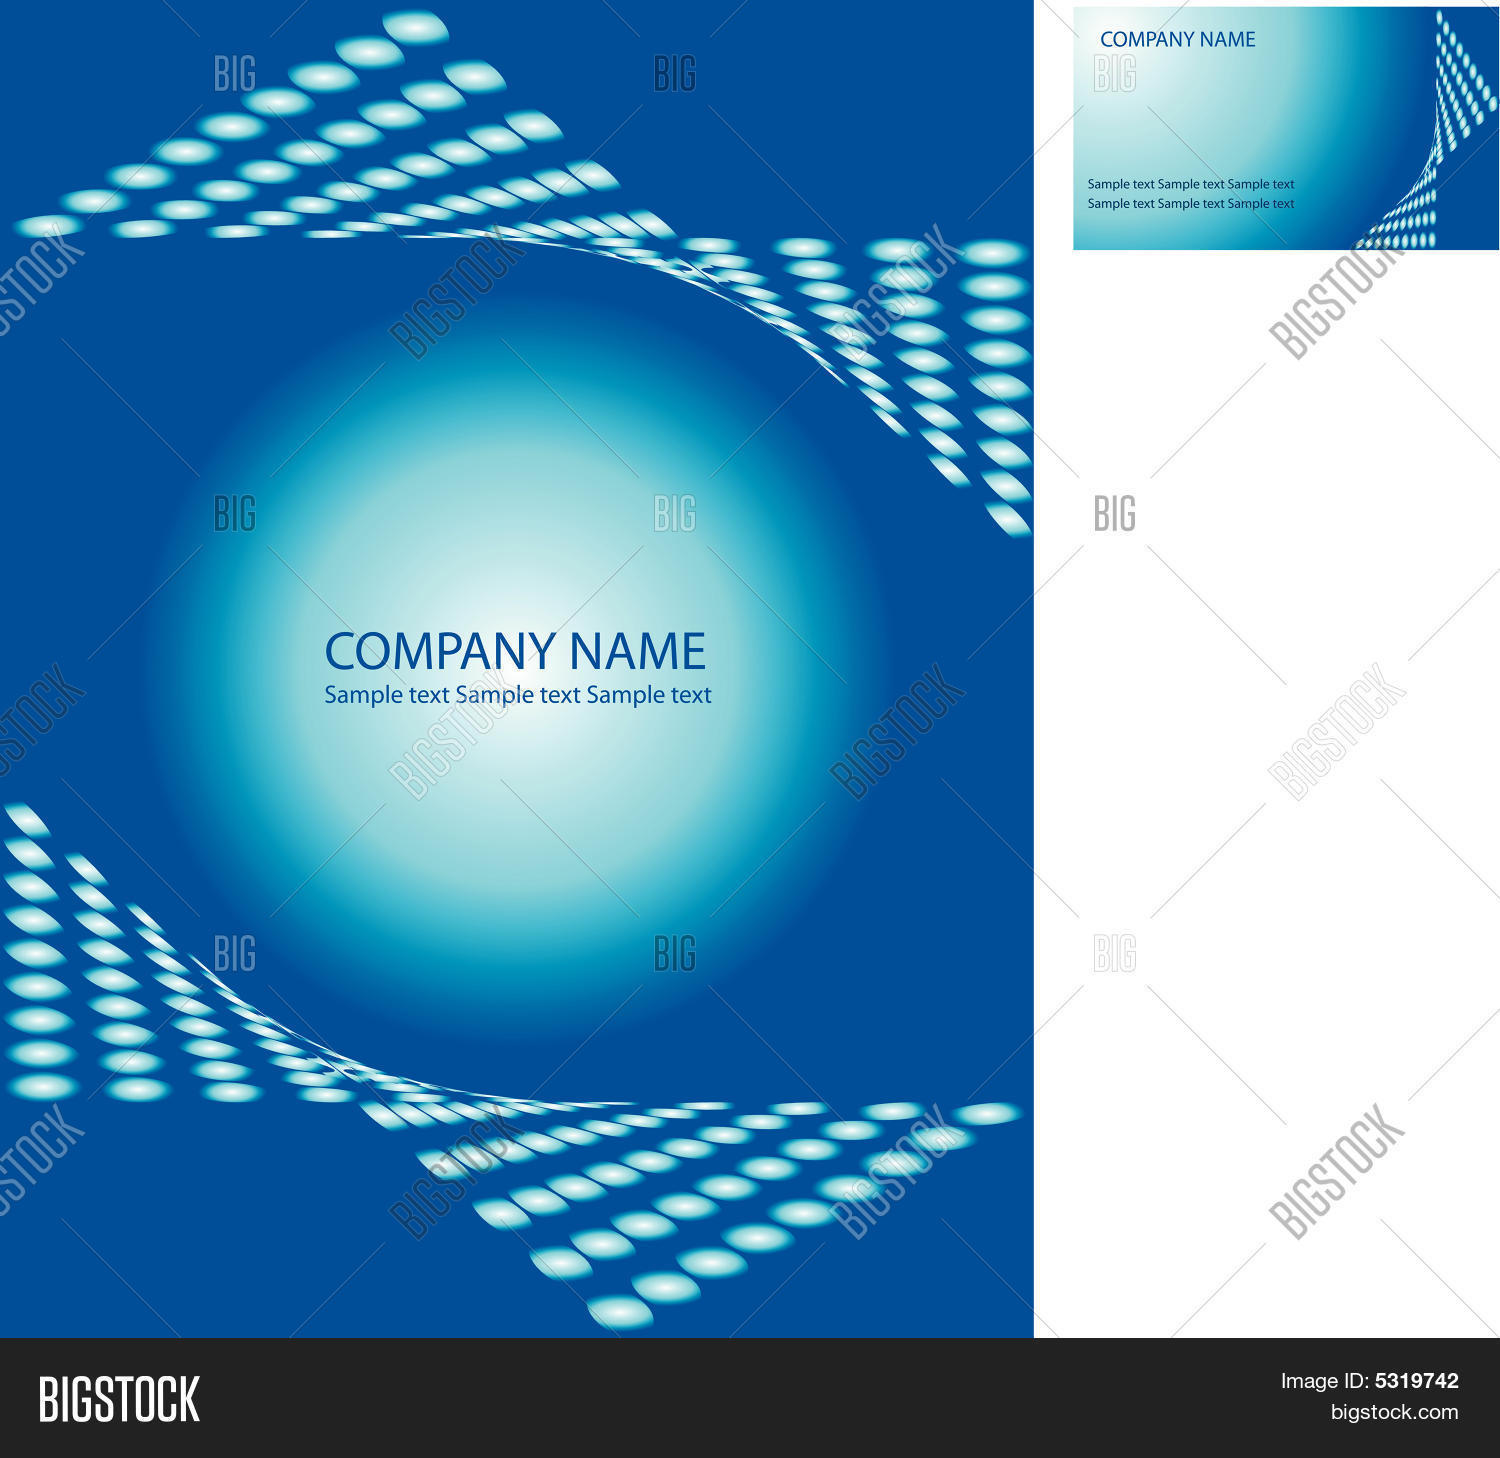 Book Cover Design Abstract : Abstract business book cover vector photo bigstock